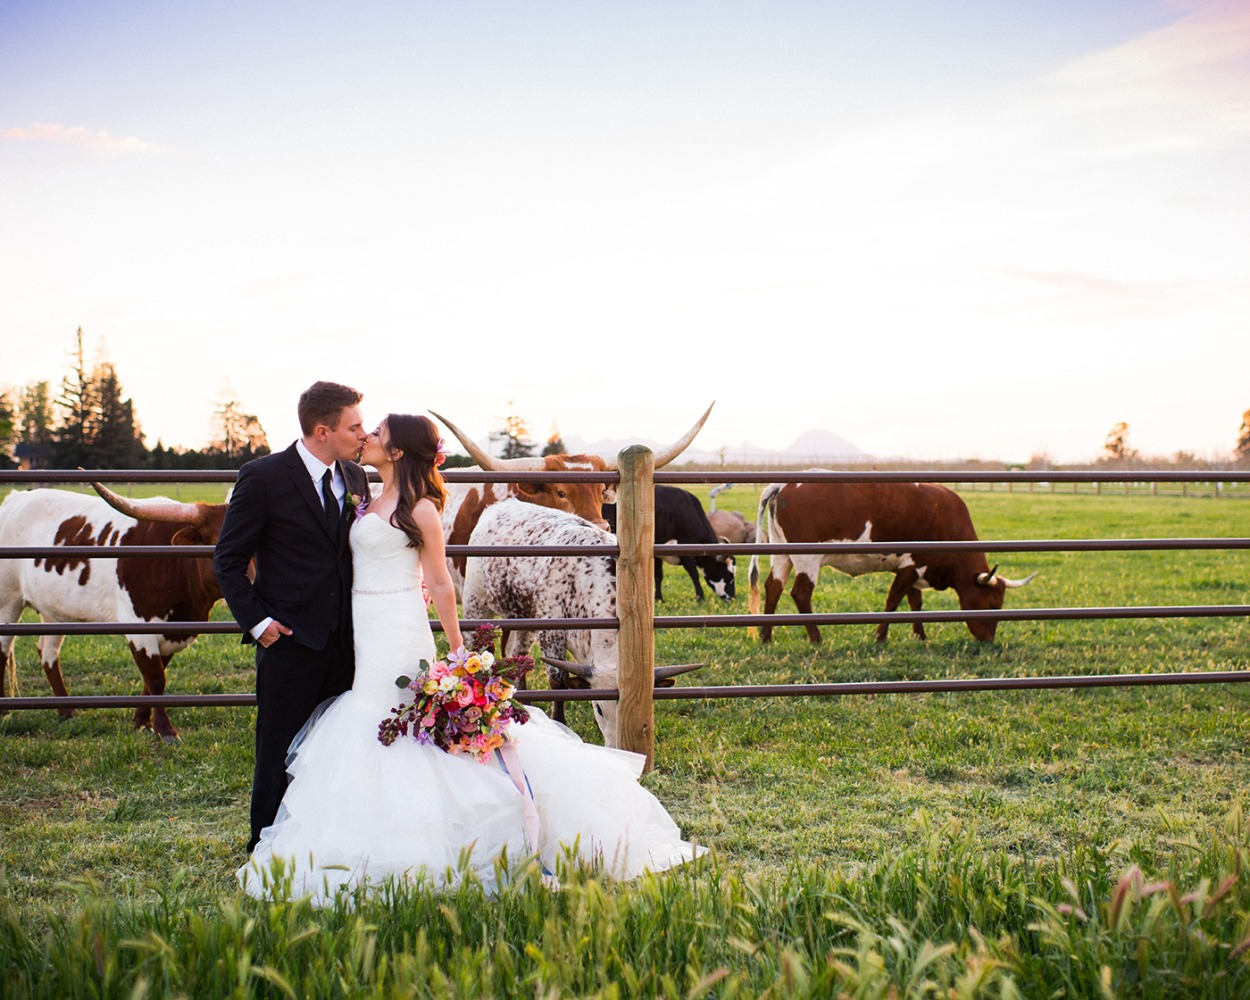 Longhorn ranch wedding photo idea